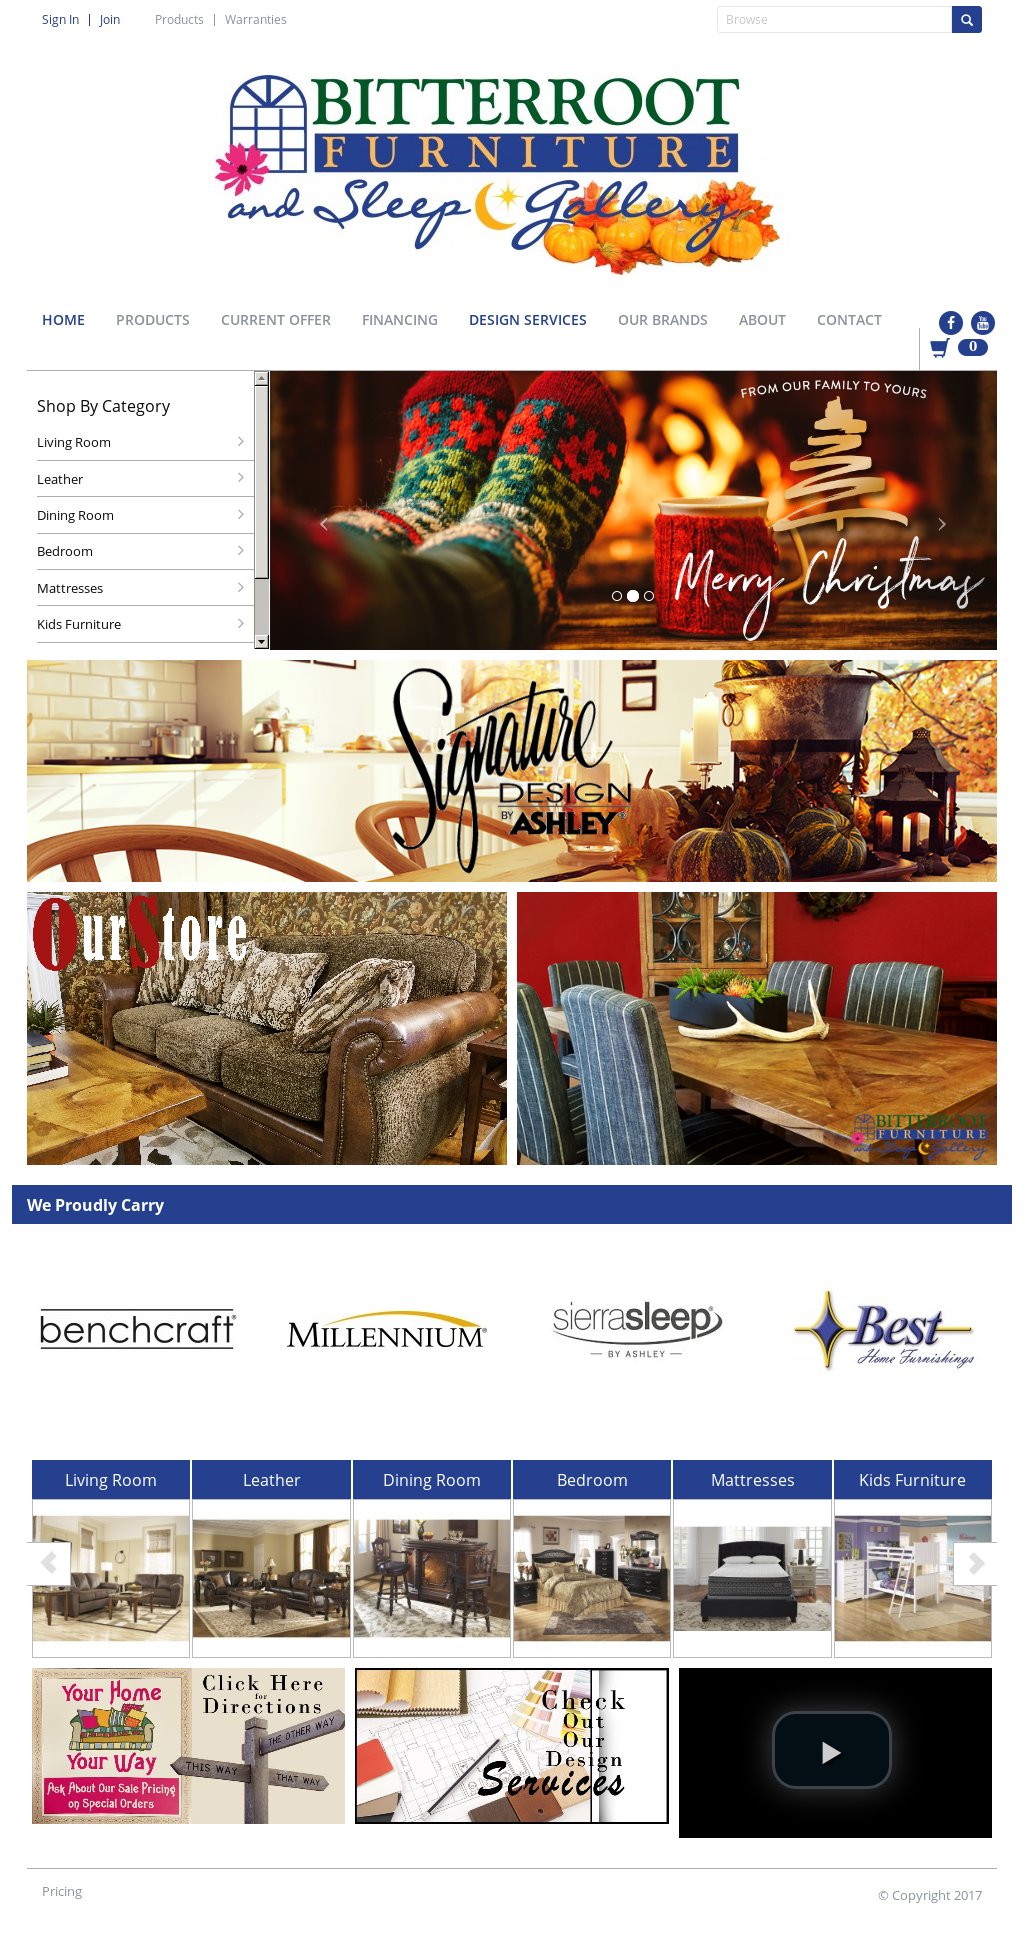 Bitterroot Furniture Website History